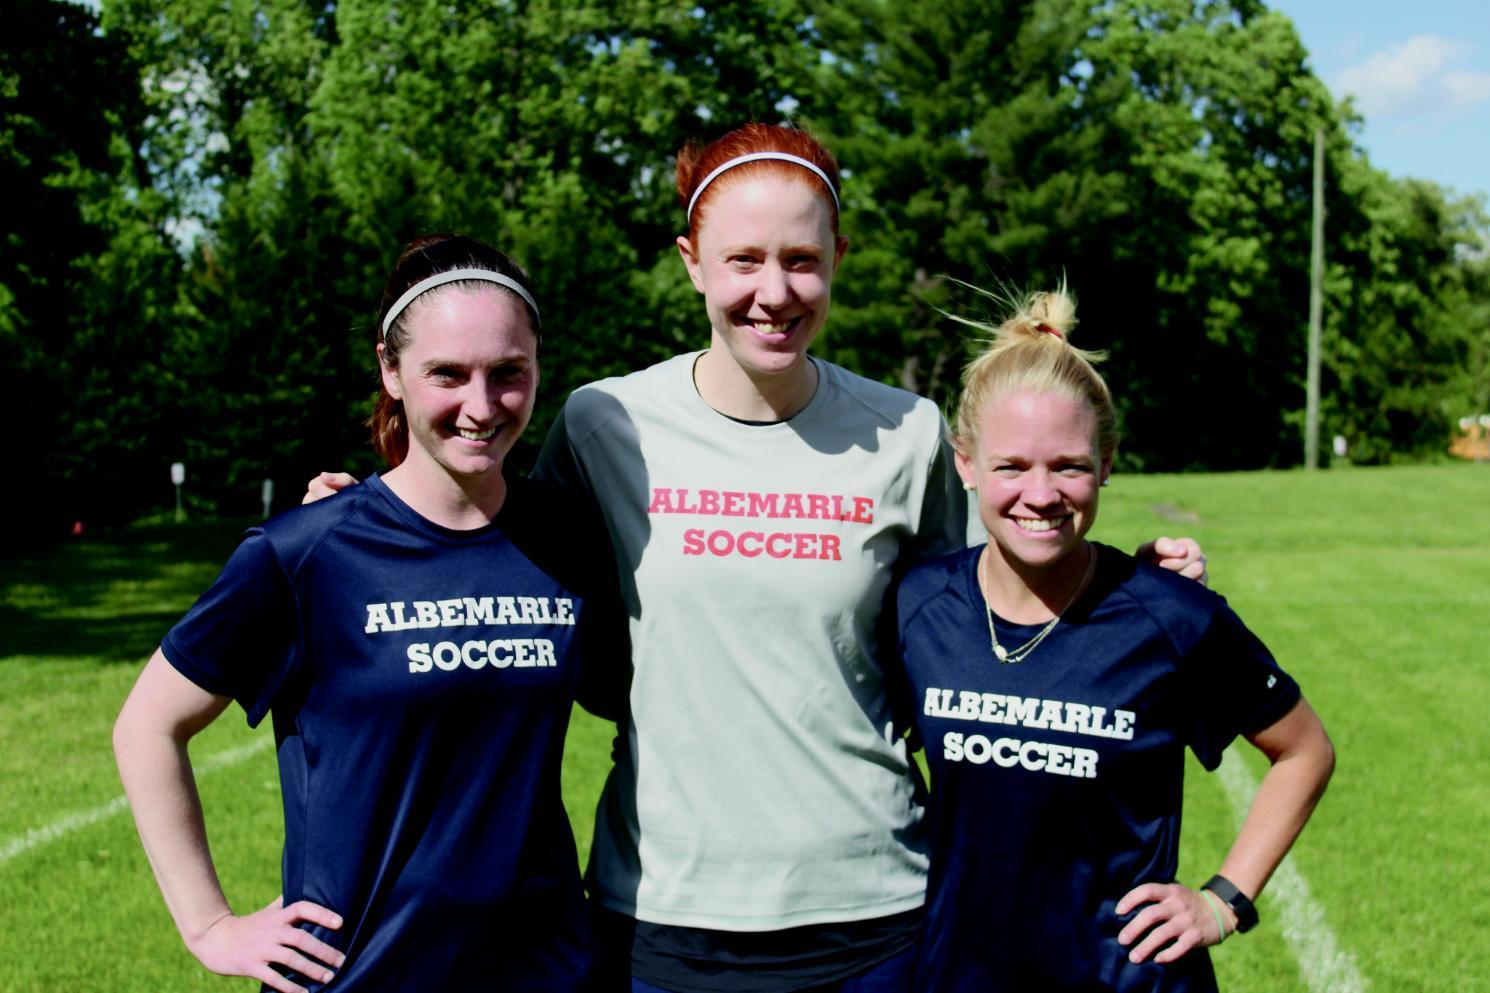 Katie Devlin Carpenter '12, Anne Whitmore '08 and Amy Sherrill '08